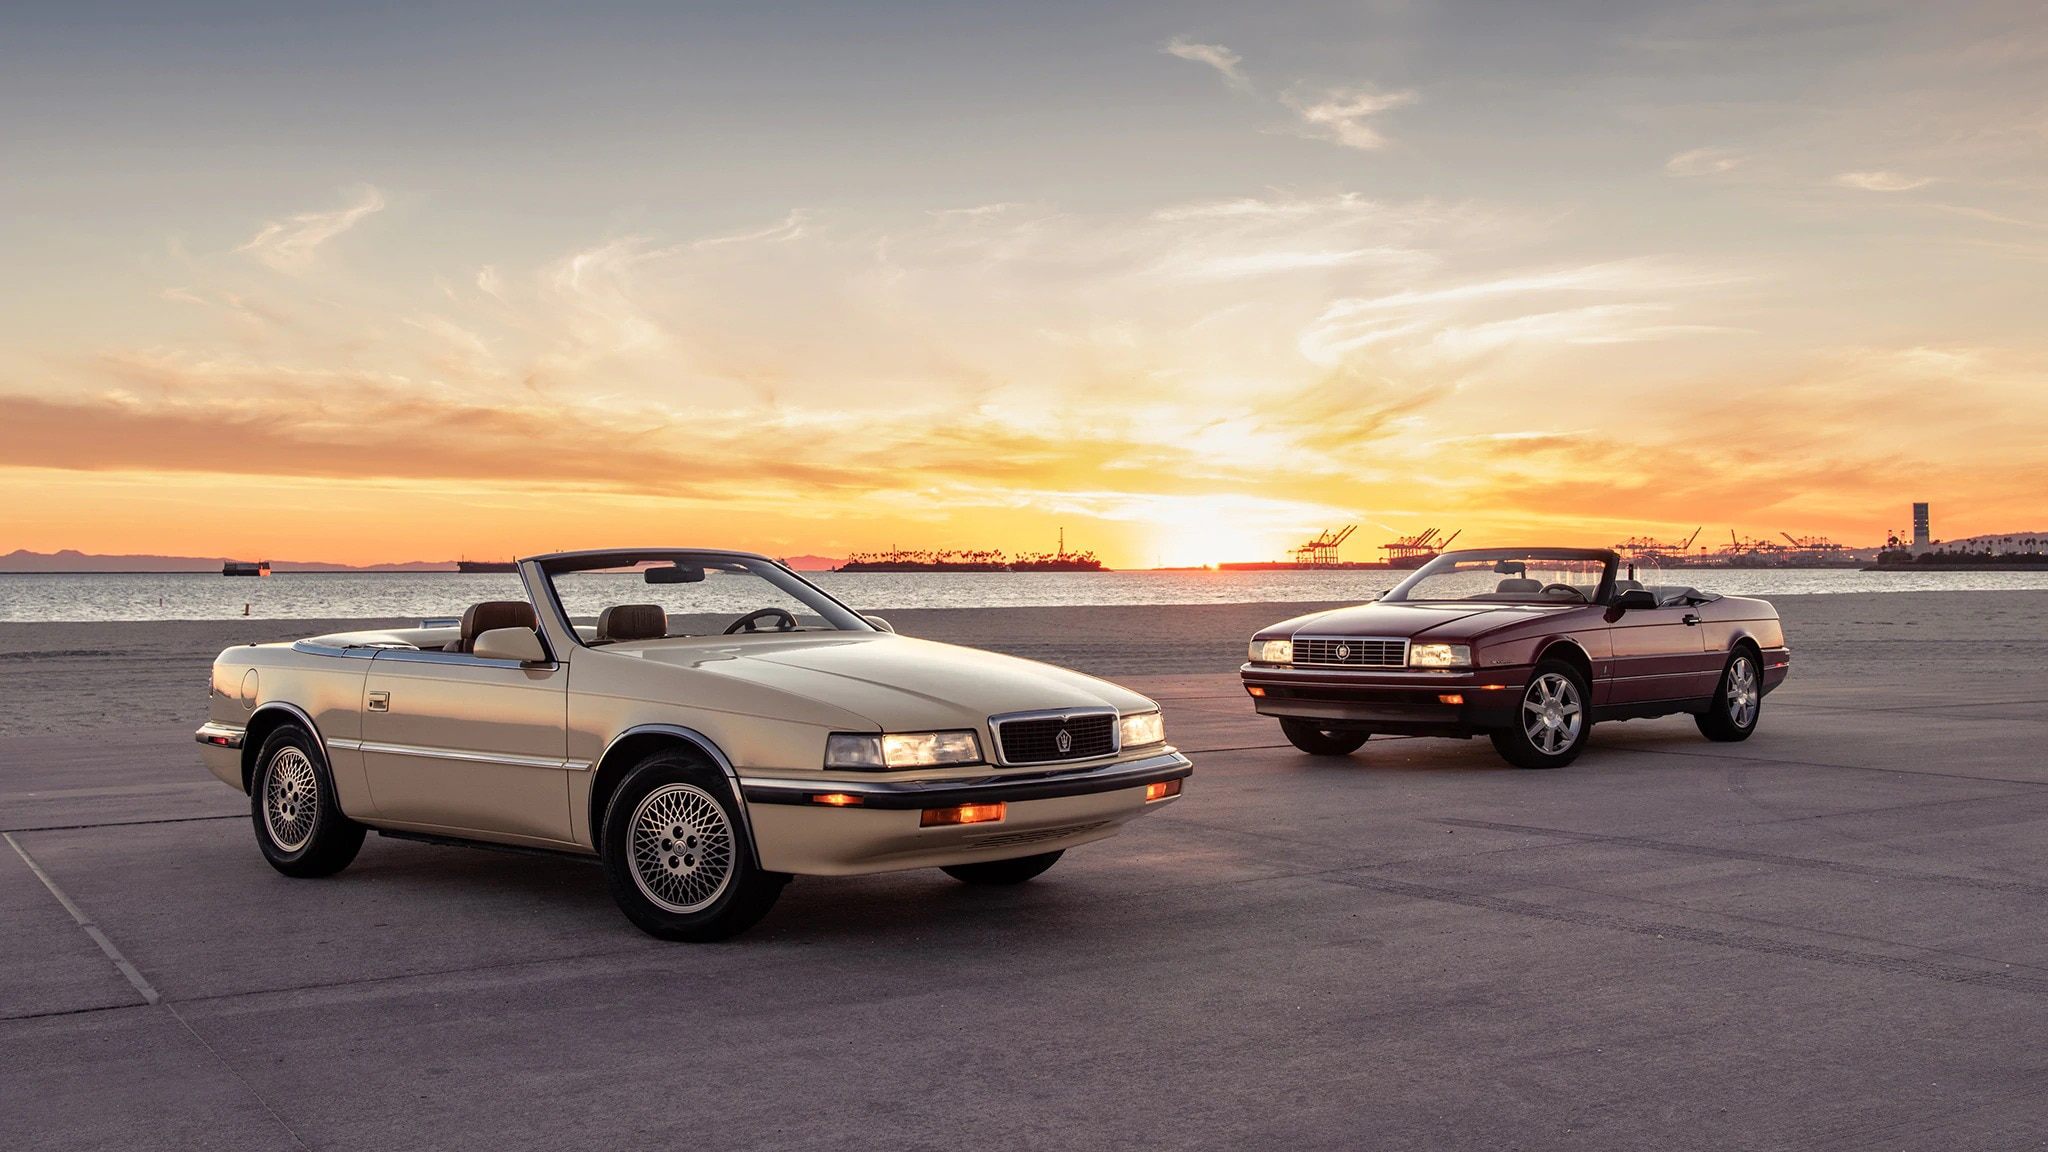 Classic Luxury Convertible Comparison: 1989 Chrysler TC by Maserati vs 1993 Cadillac Allanté - Automobile